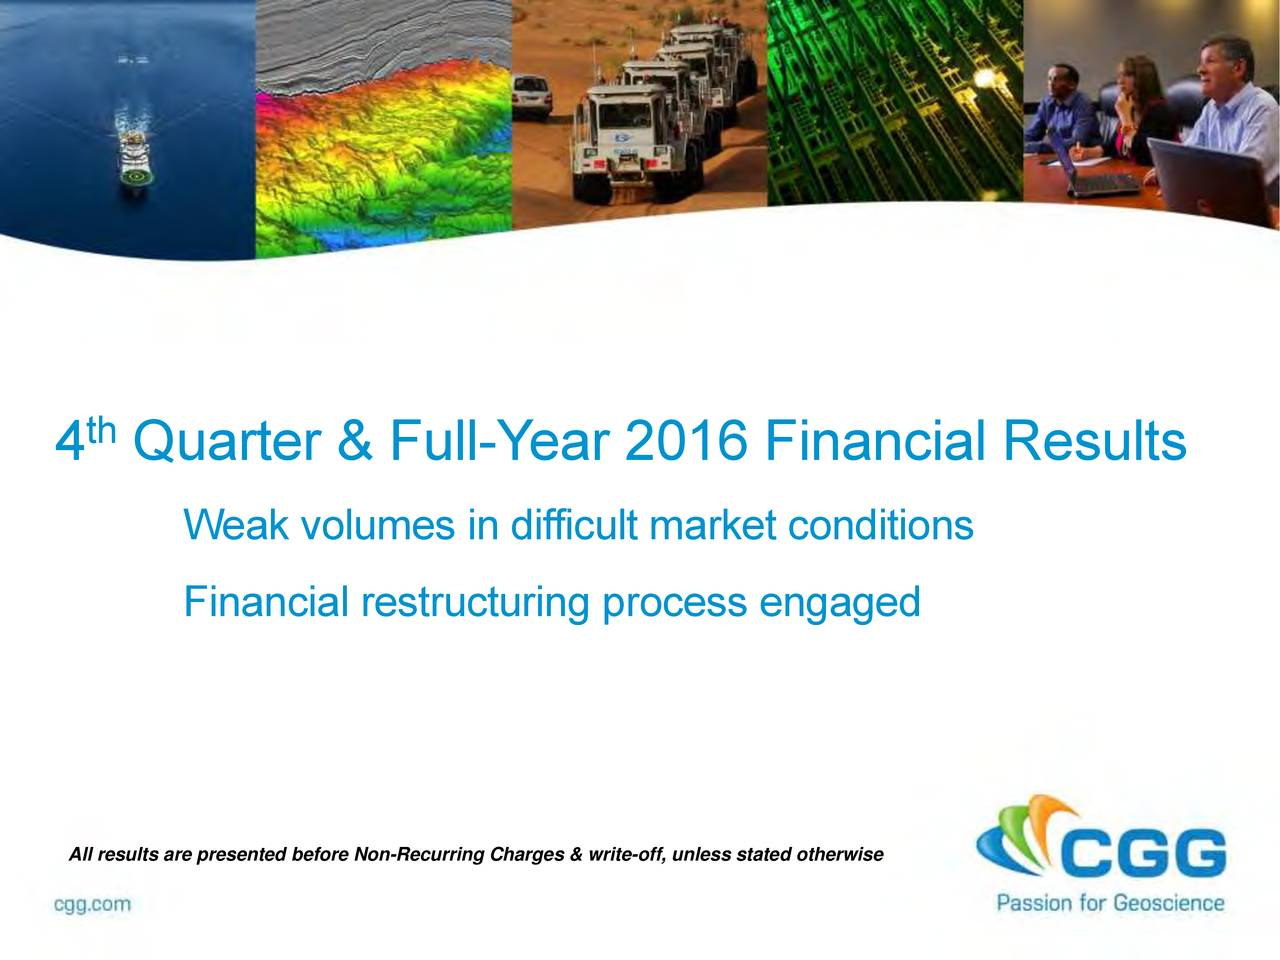 4 Quarter & Full-Y ear 2016 Financial Results Weak volumes in difficult market conditions Financial restructuring process engaged All results are presented before Non-Recurring Charges & write-off, unless stated otherwise